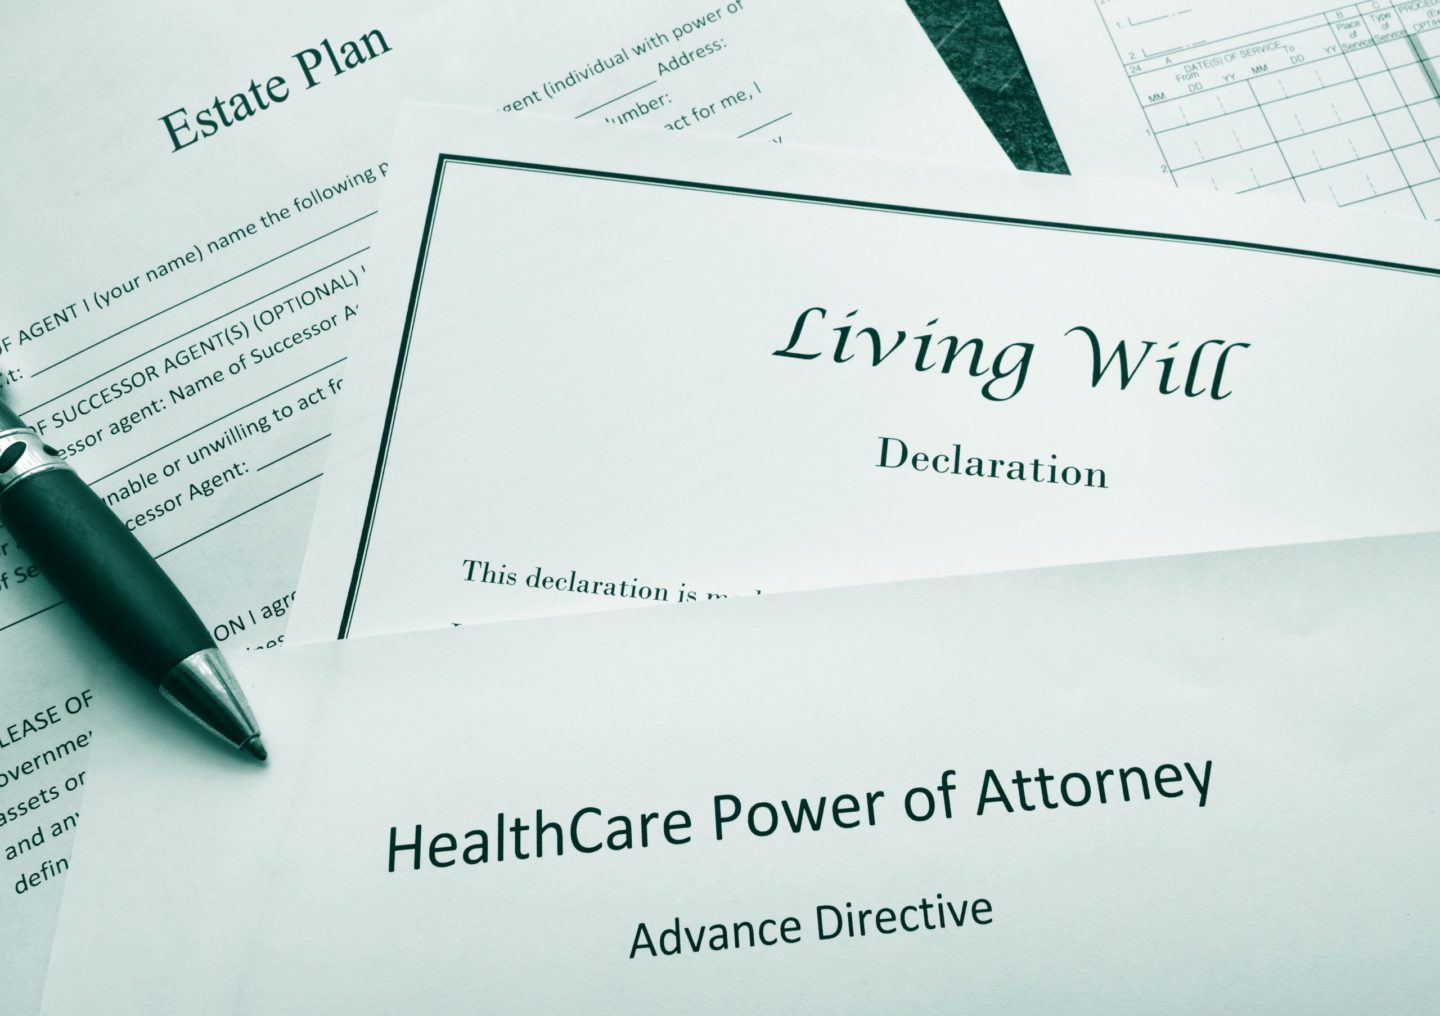 Estate settlement and planning